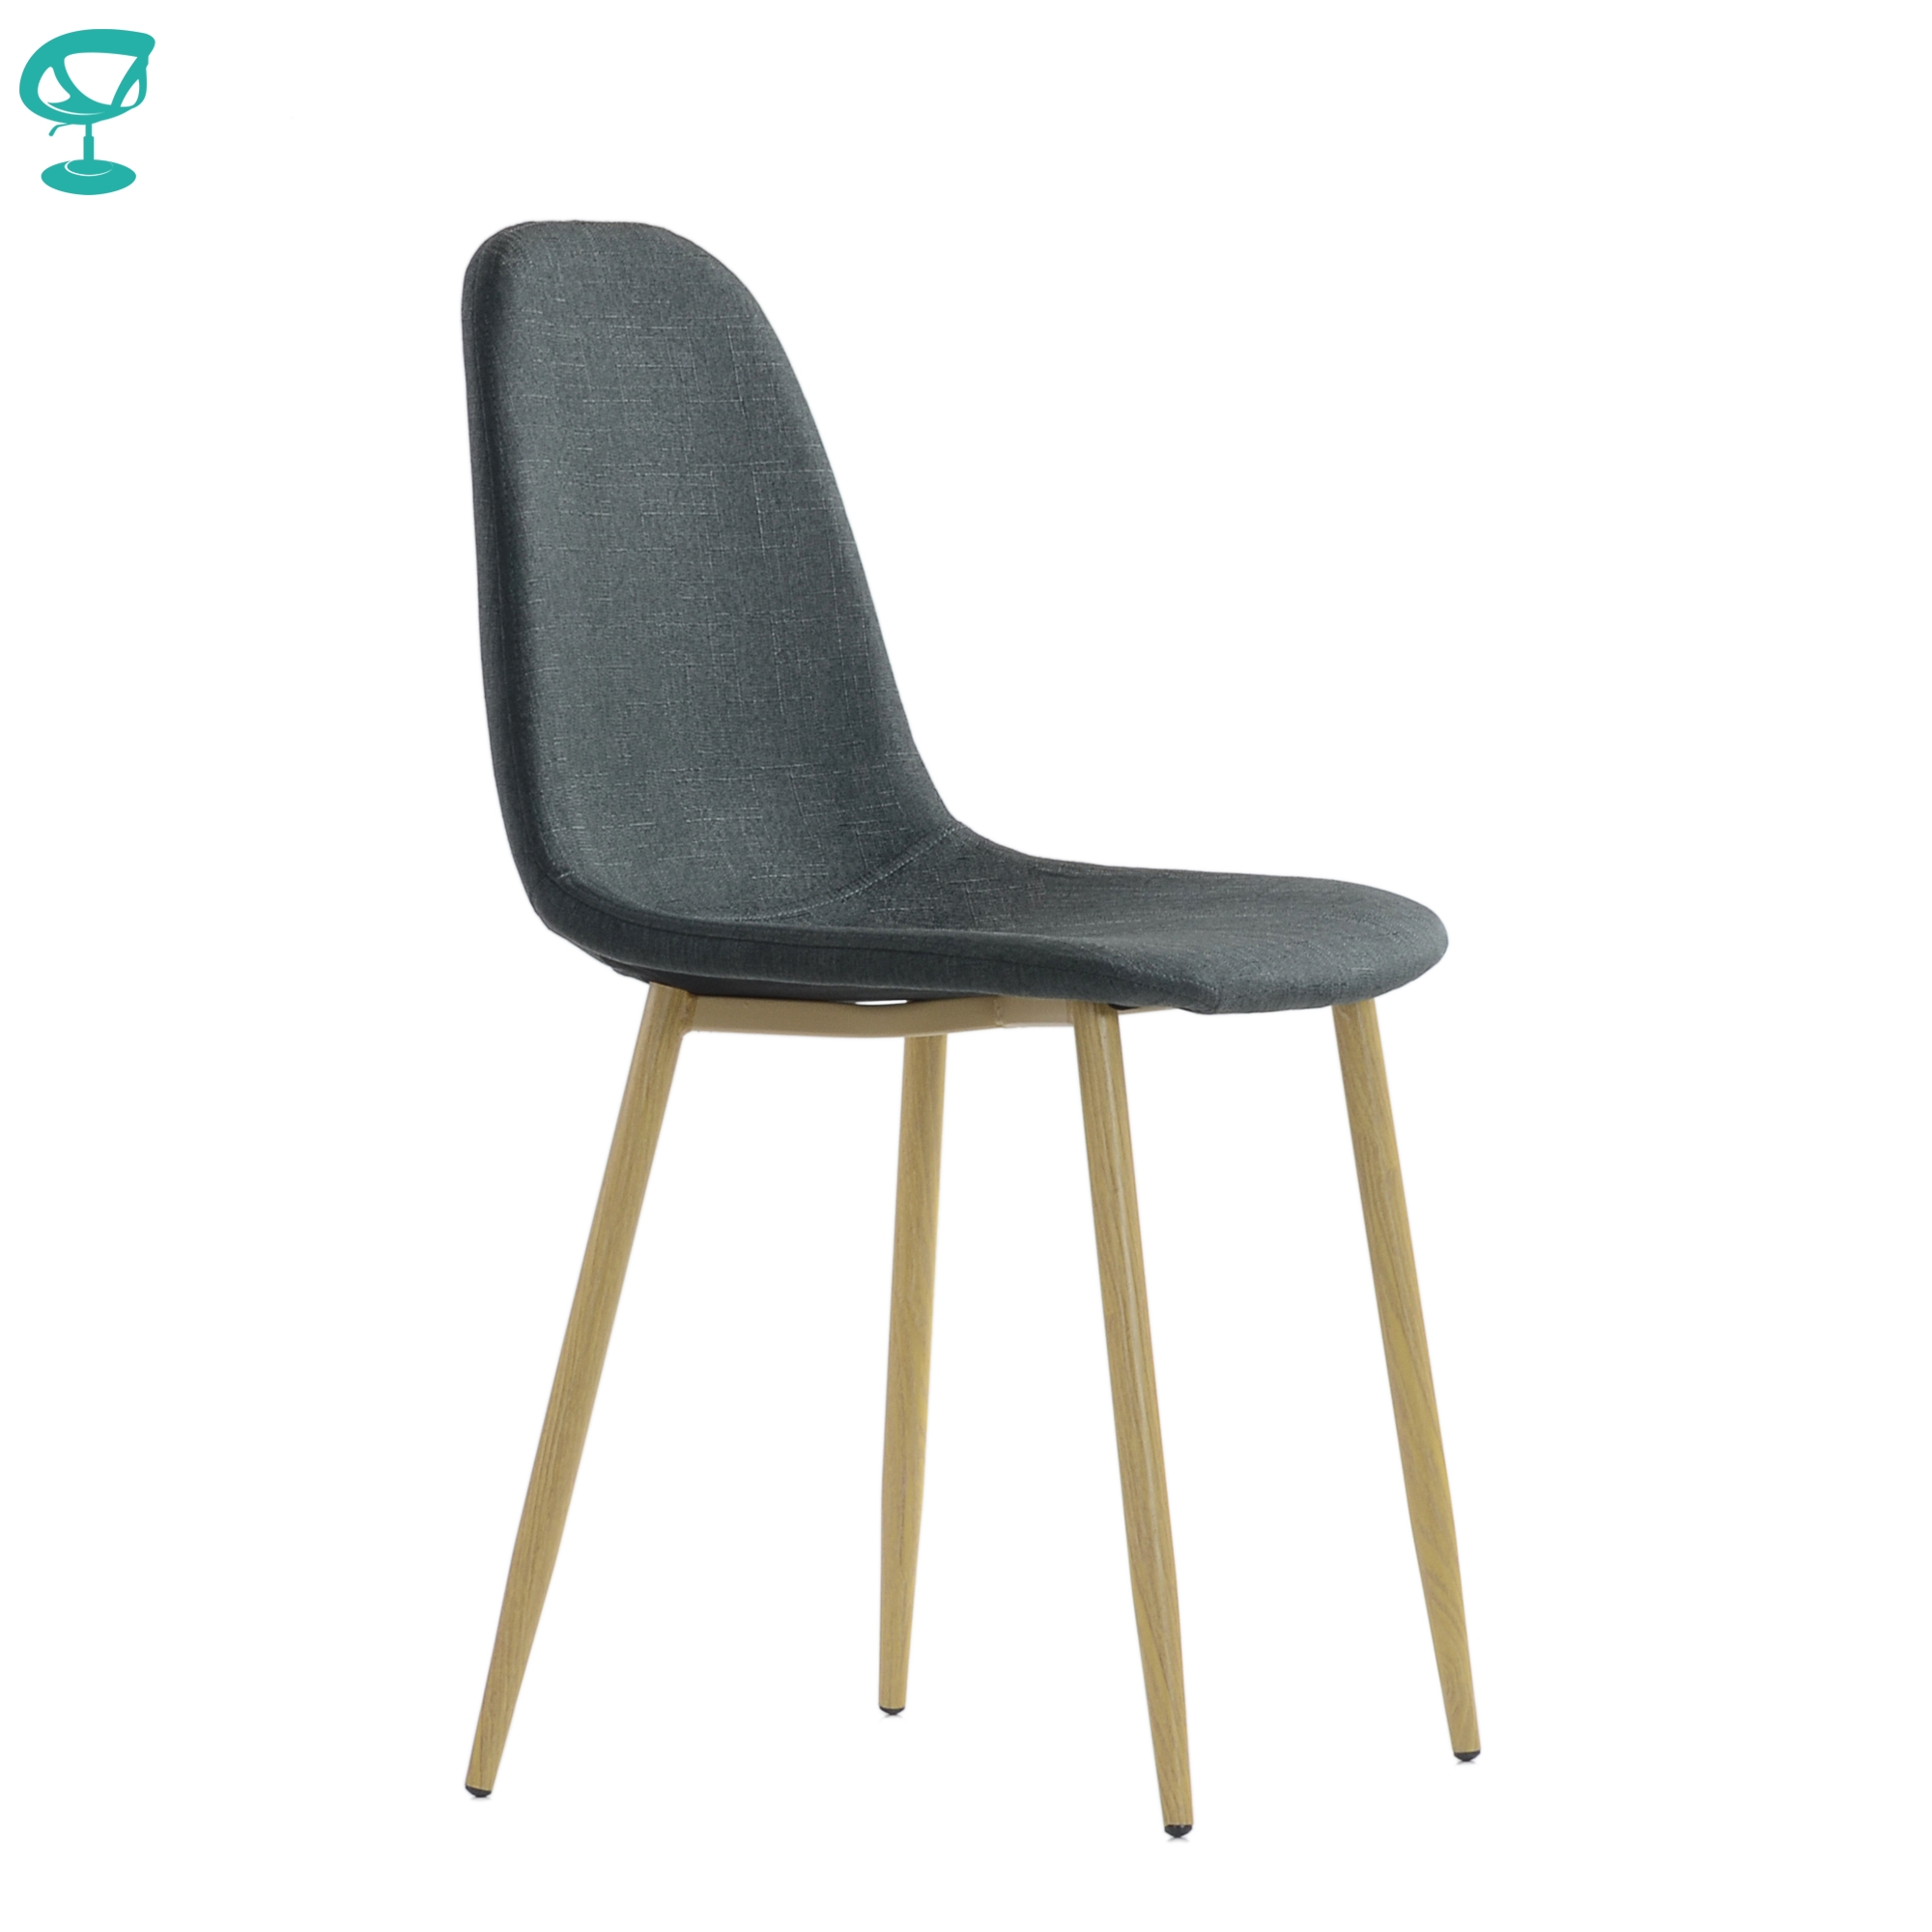 95744 Barneo S-15 Gray Kitchen Chair Legs Metal Seat Fabric Chair For Living Room Chair Dining Table Chair Furniture For Kitchen